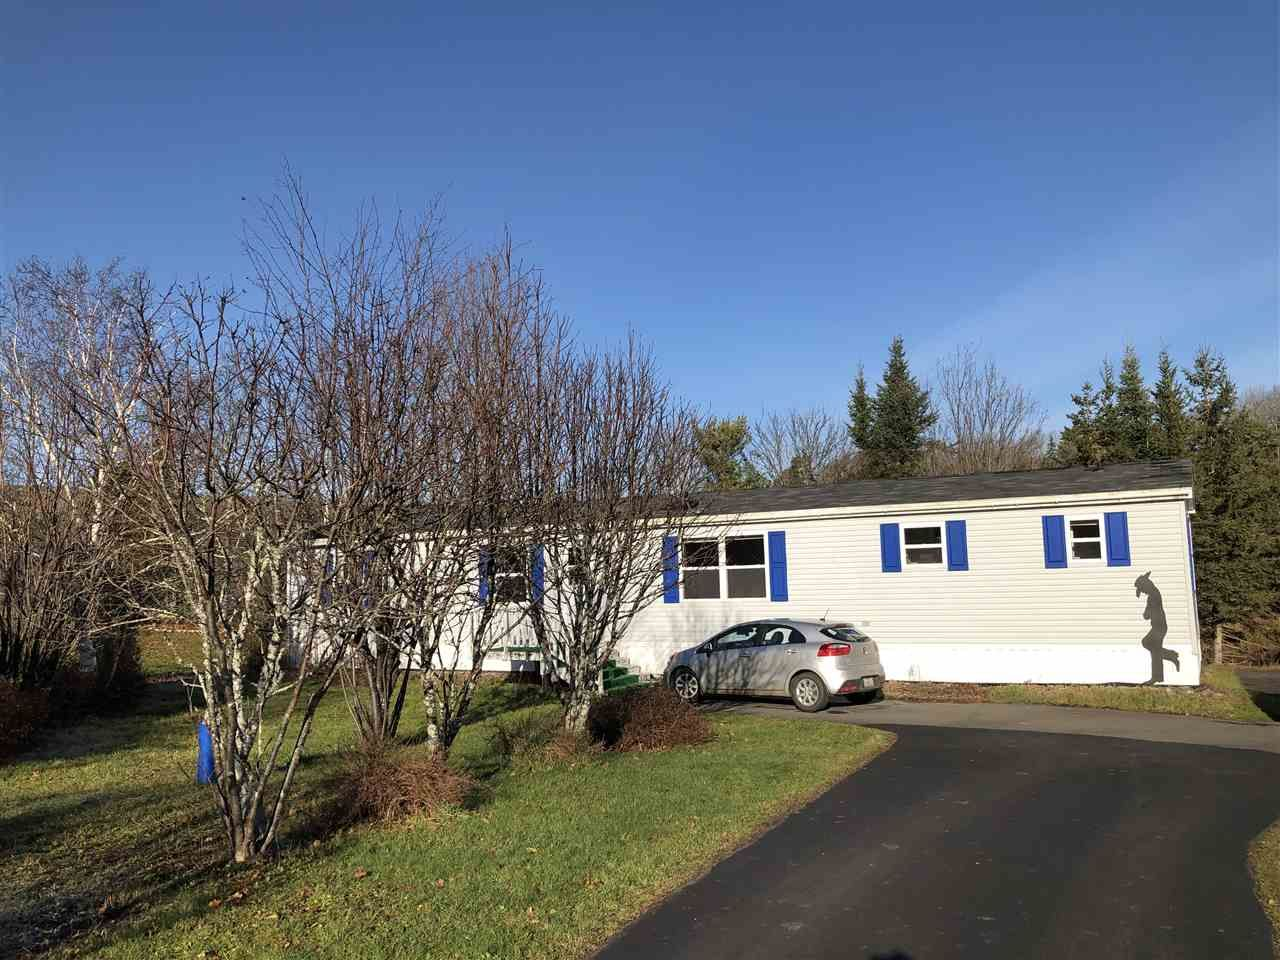 Main Photo: 809 MARSHDALE Road in Hopewell: 108-Rural Pictou County Residential for sale (Northern Region)  : MLS®# 202024758